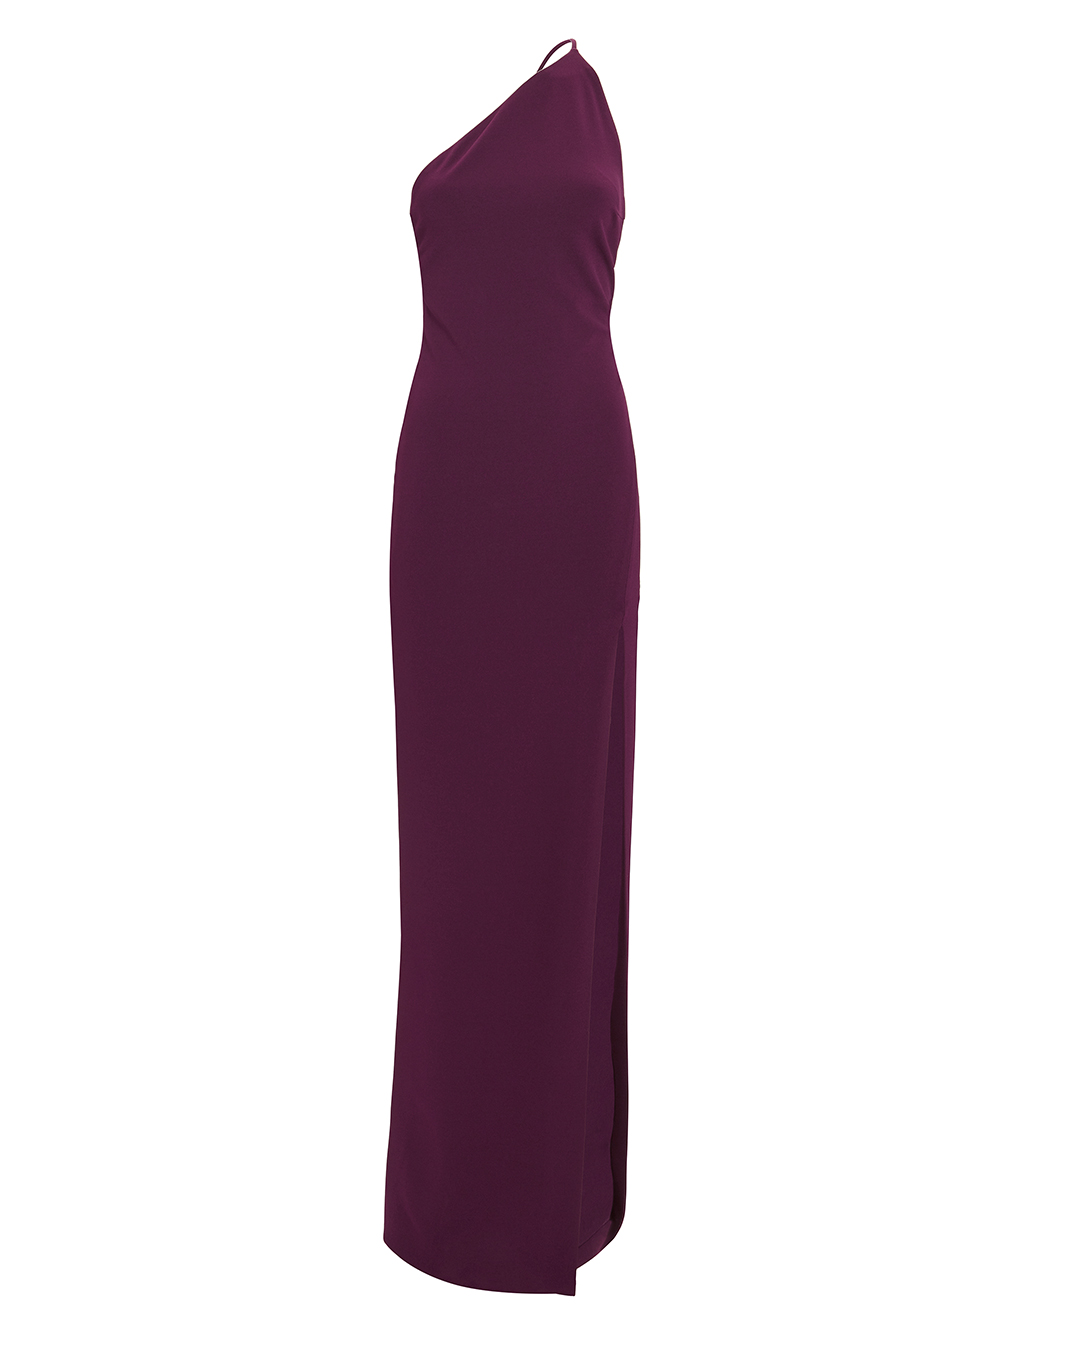 SOLACE Petch Aubergine Gown